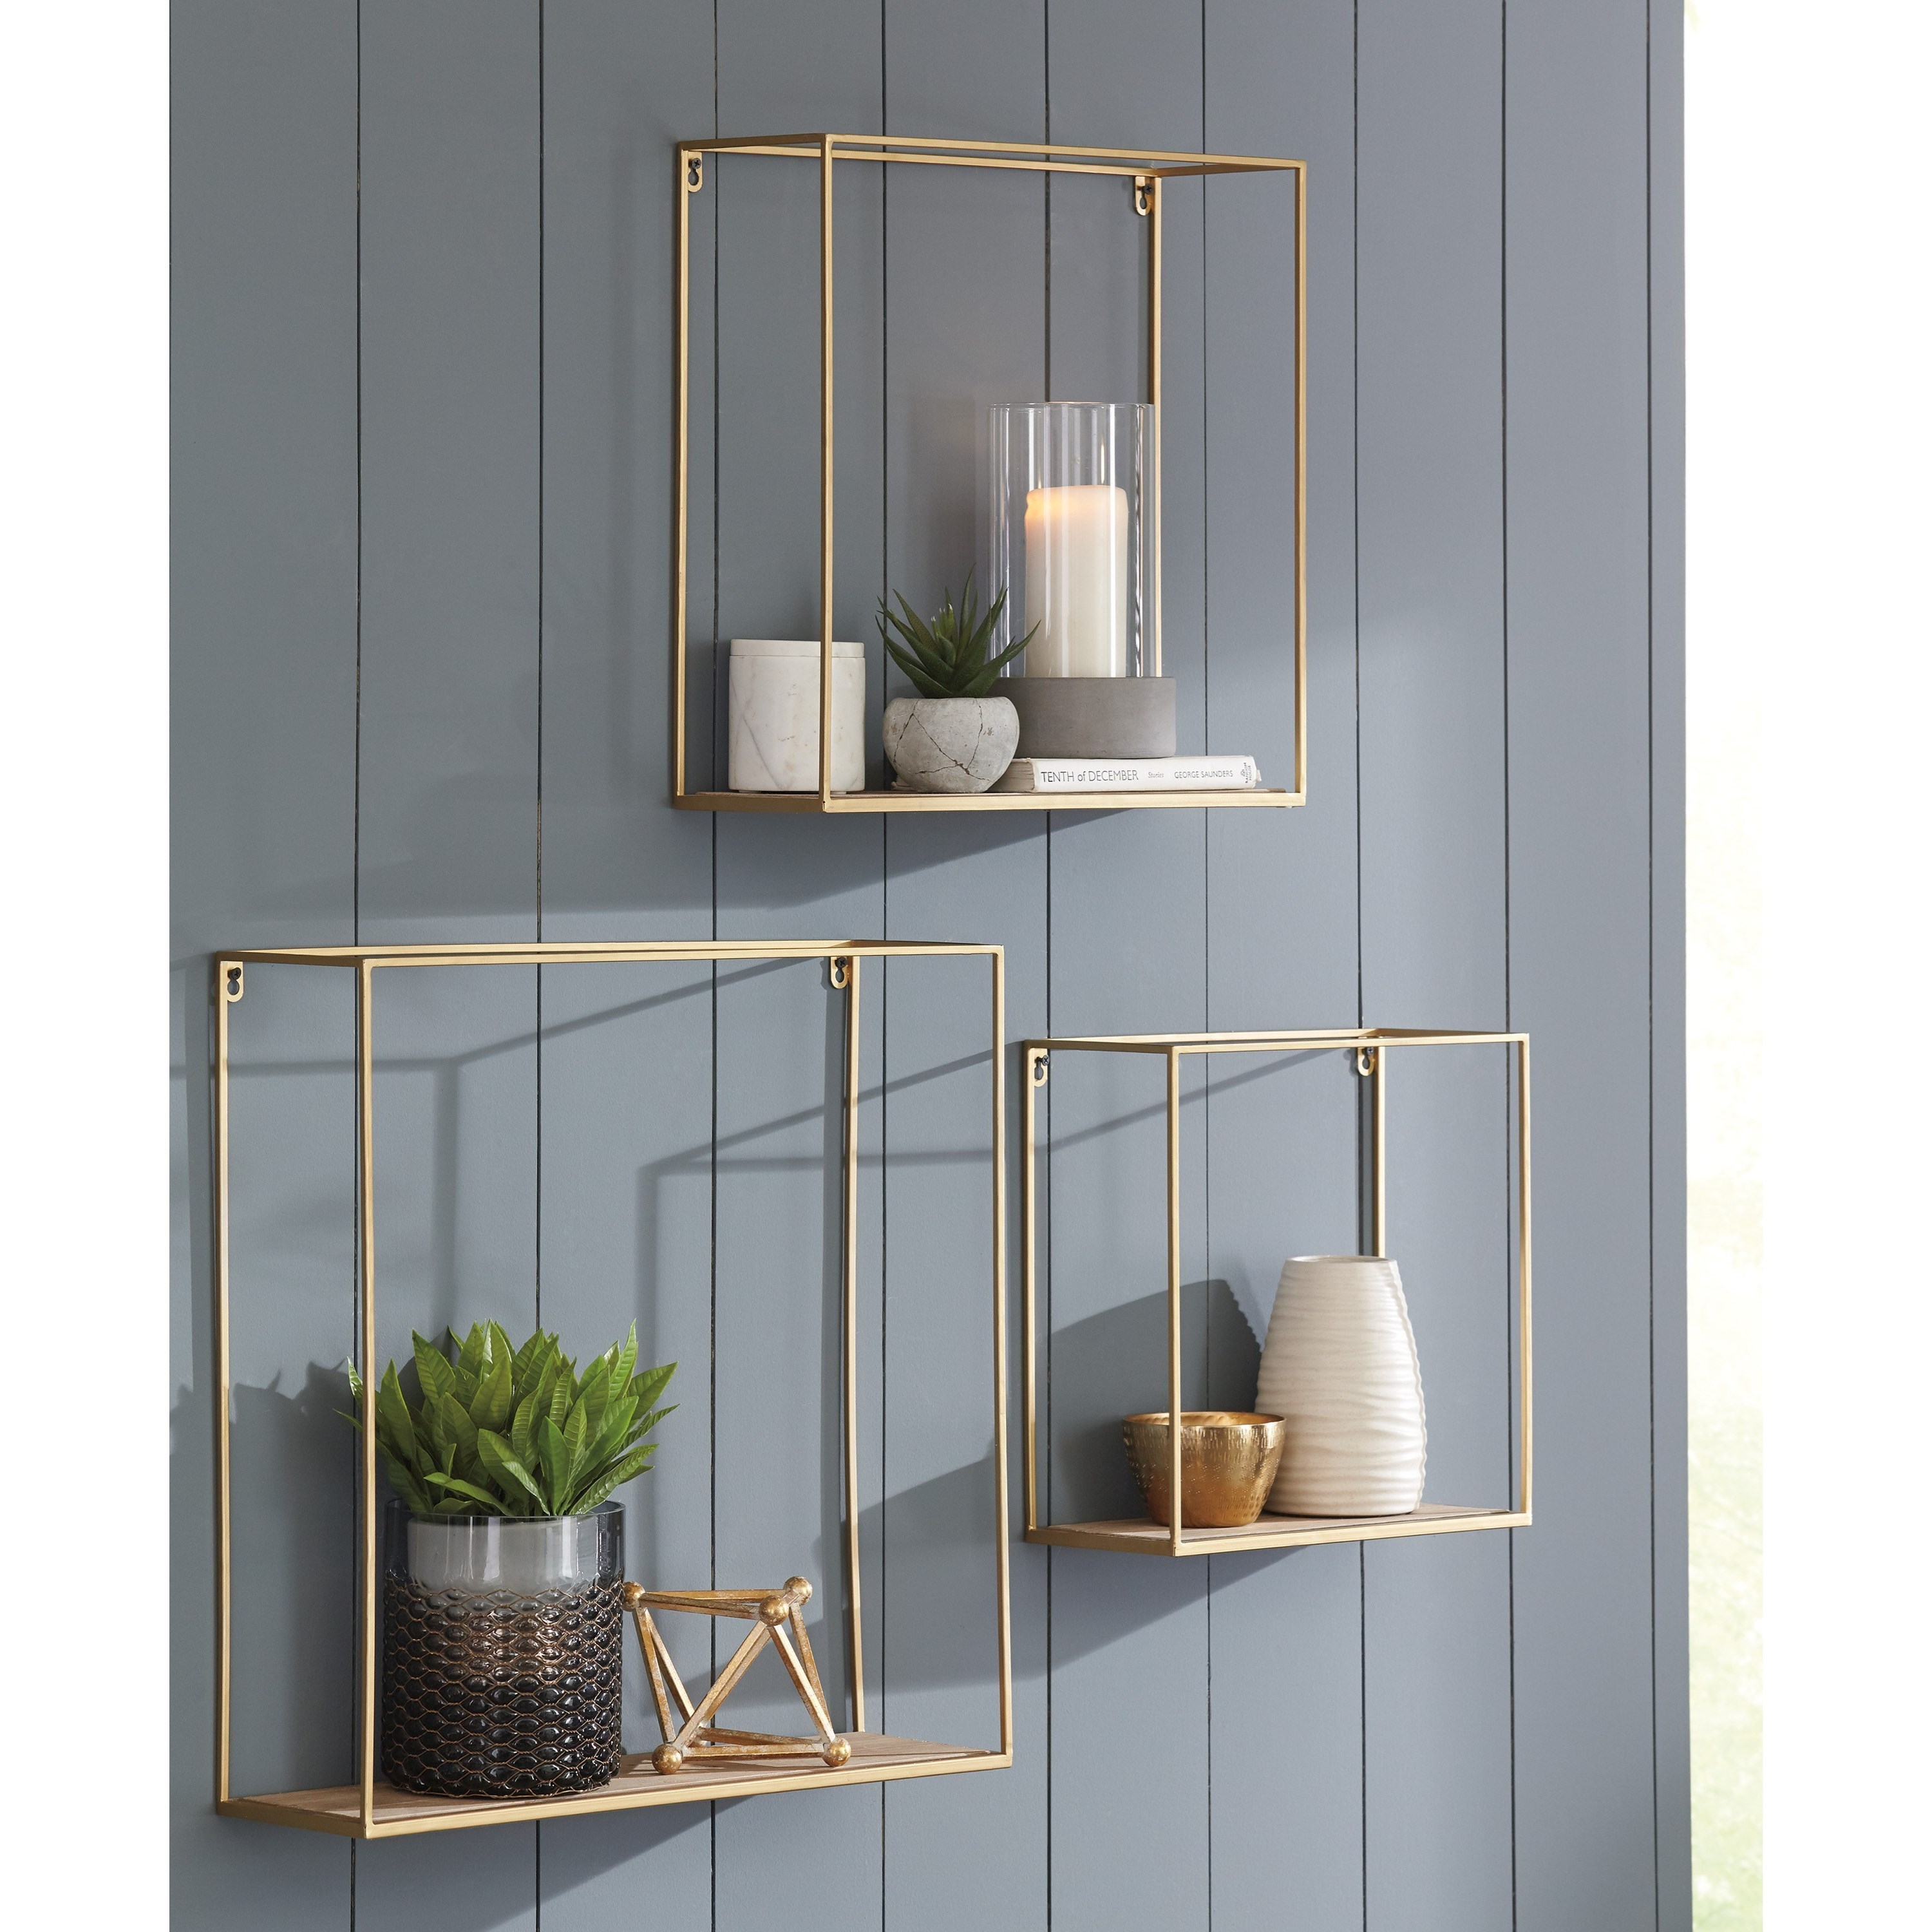 Wall Shelf Design Wall Art 3 Piece Efharis Natural Gold Wall Shelf Set By Signature Design By Ashley At Gill Brothers Furniture